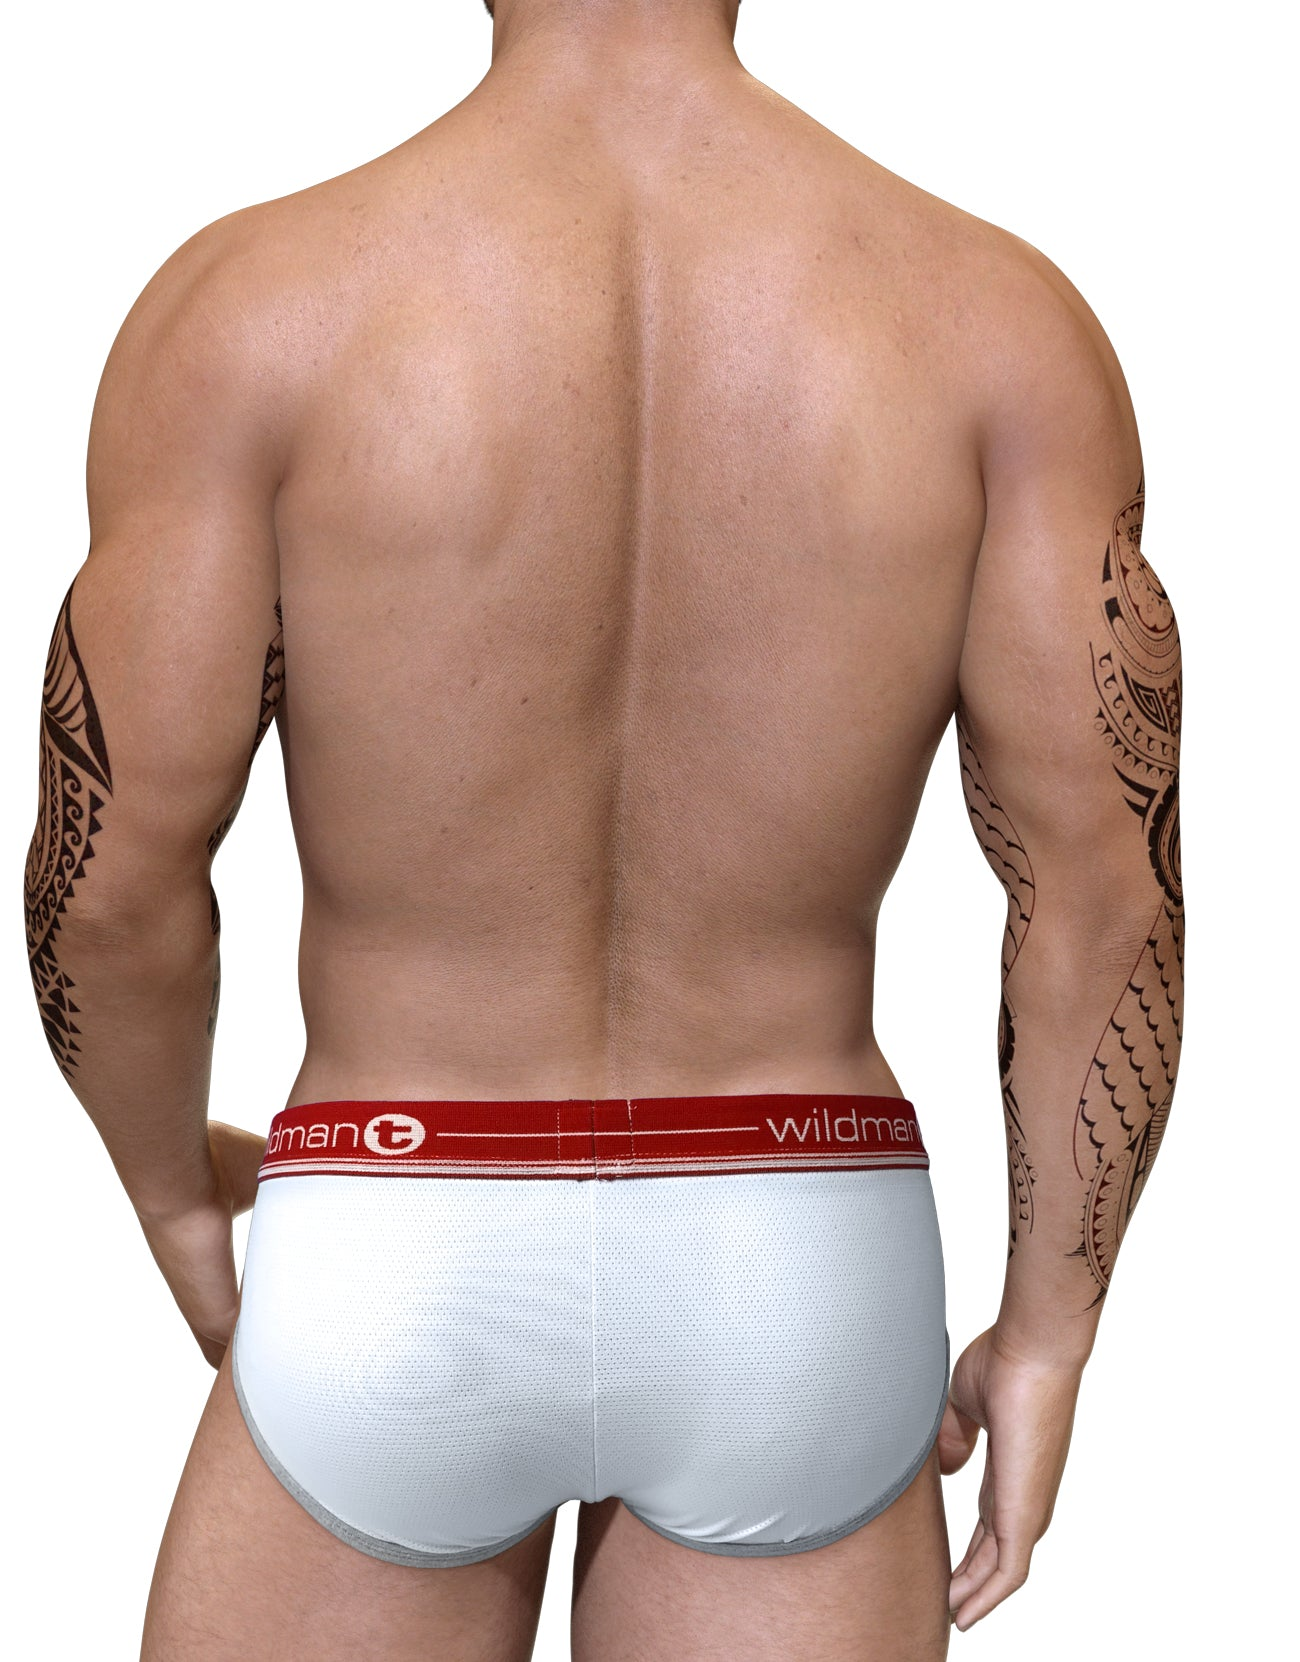 Duo Big Boy Pouch Brief Red - Big Penis Underwear, WildmanT - WildmanT